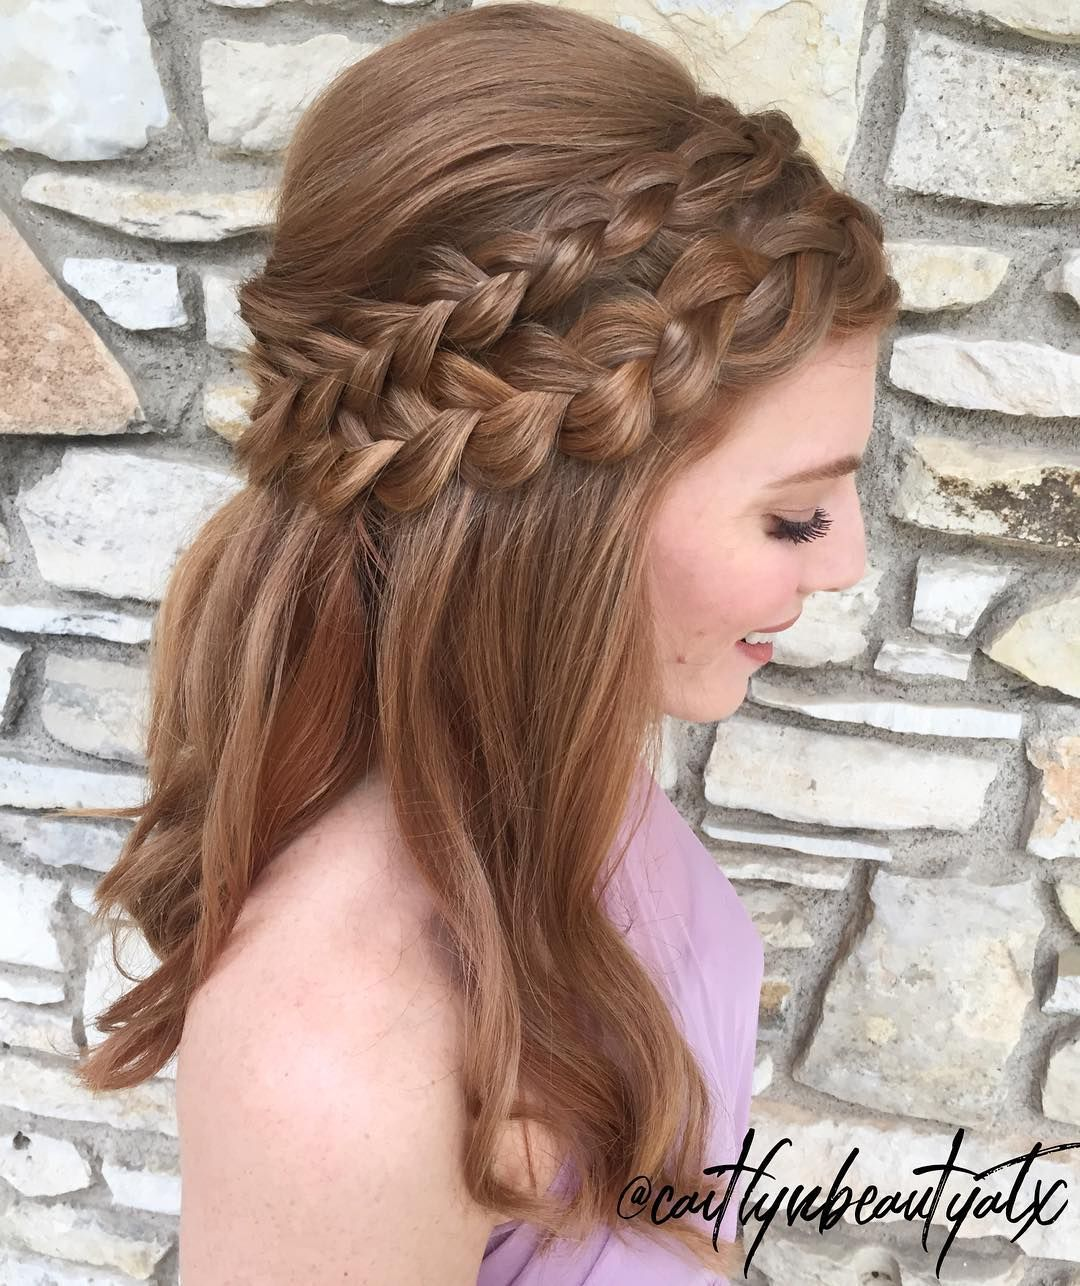 Ashley Petty On Instagram Bridal Hair Is The Only Thing That Can Get Me Up Before Sunrise Hair Styles Front Hair Styles Hair Down With Braid